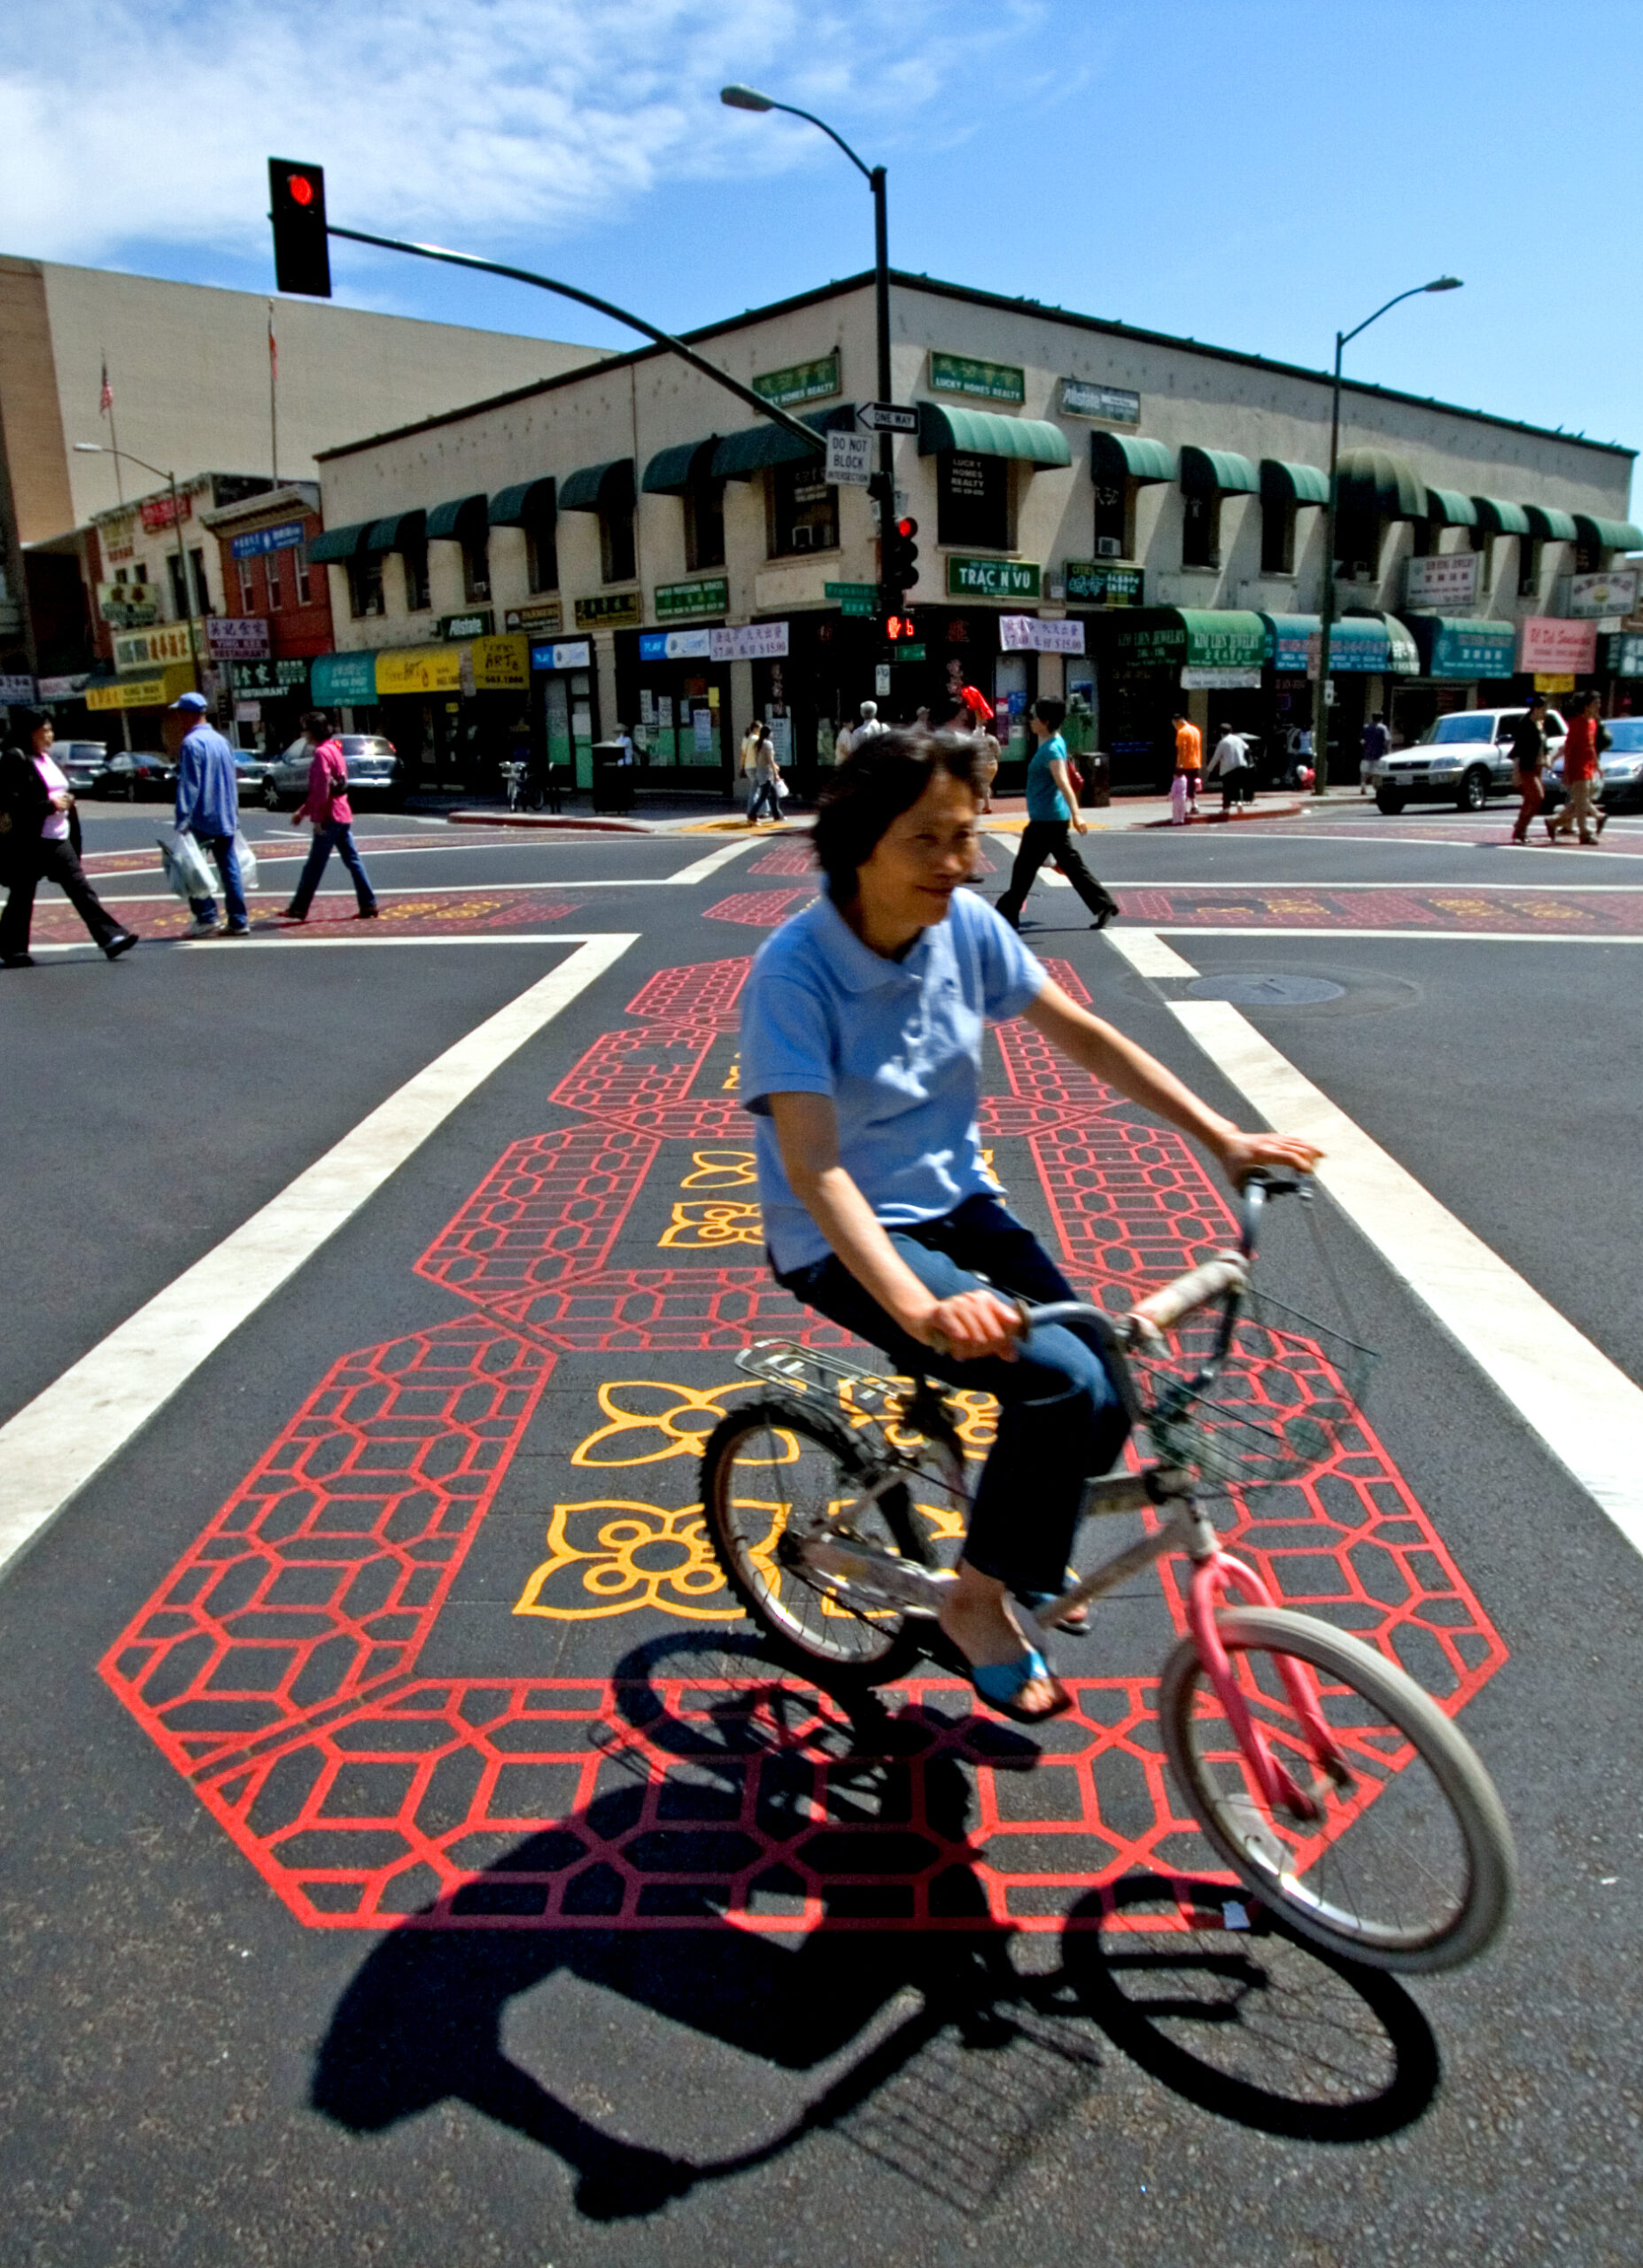 an asian woman on a bike rolling through a decorative crosswalk in chinatown/Oakland